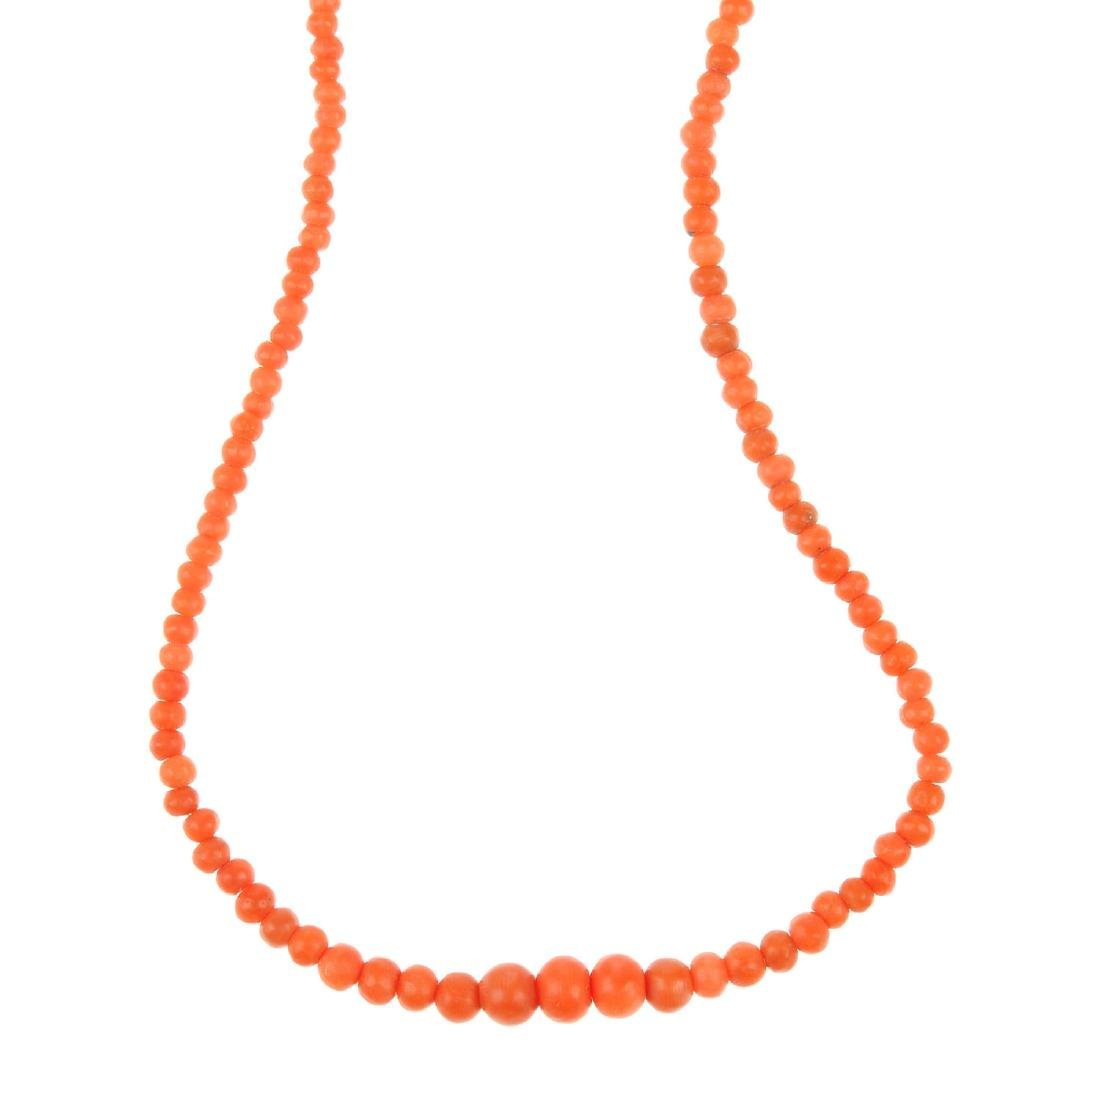 A coral bead necklace. Comprising a single graduated